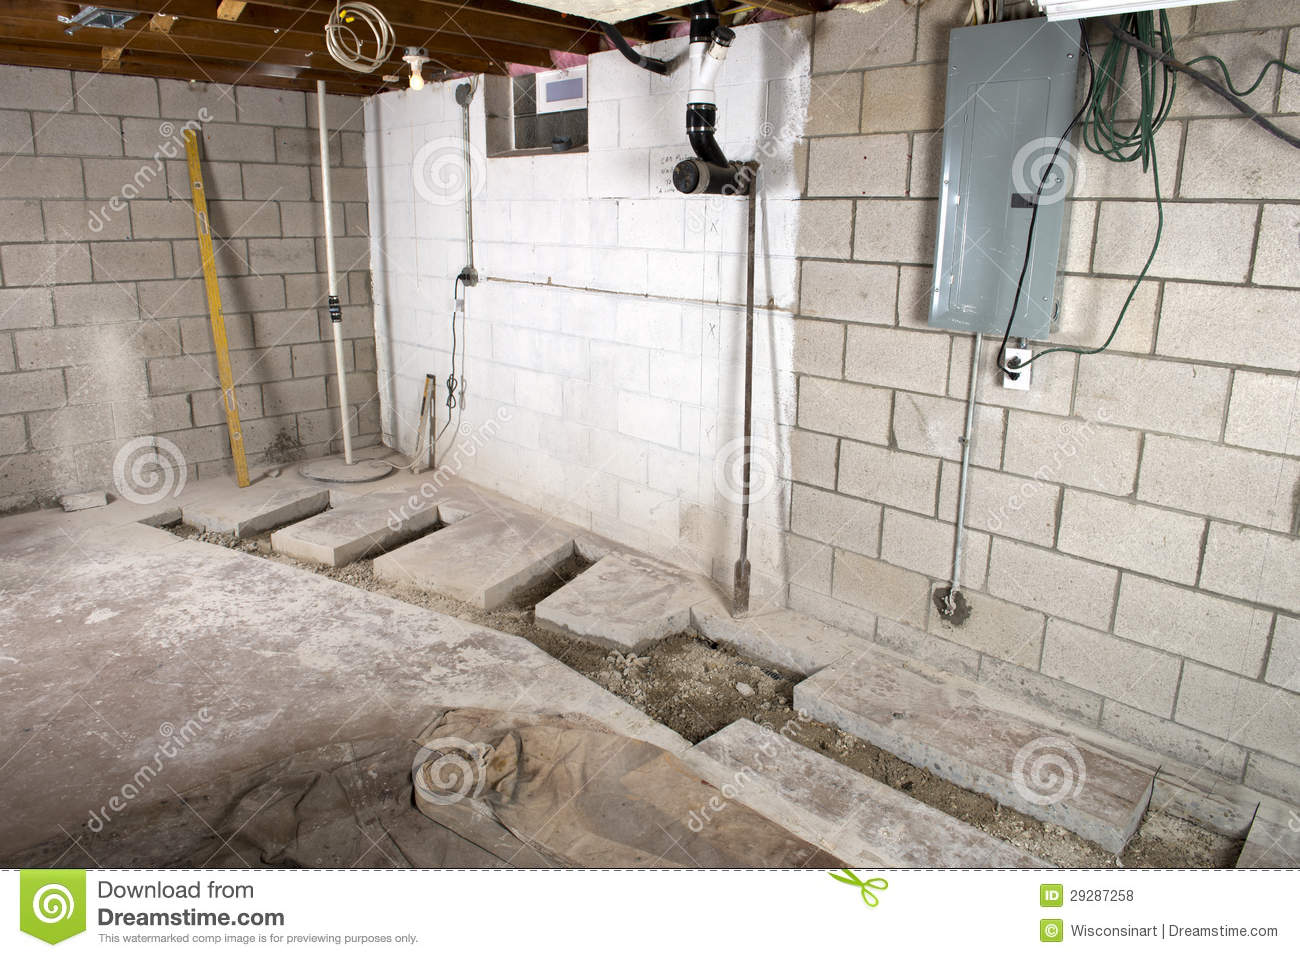 Merveilleux Home Improvement Basement Remodeling, Plumbing